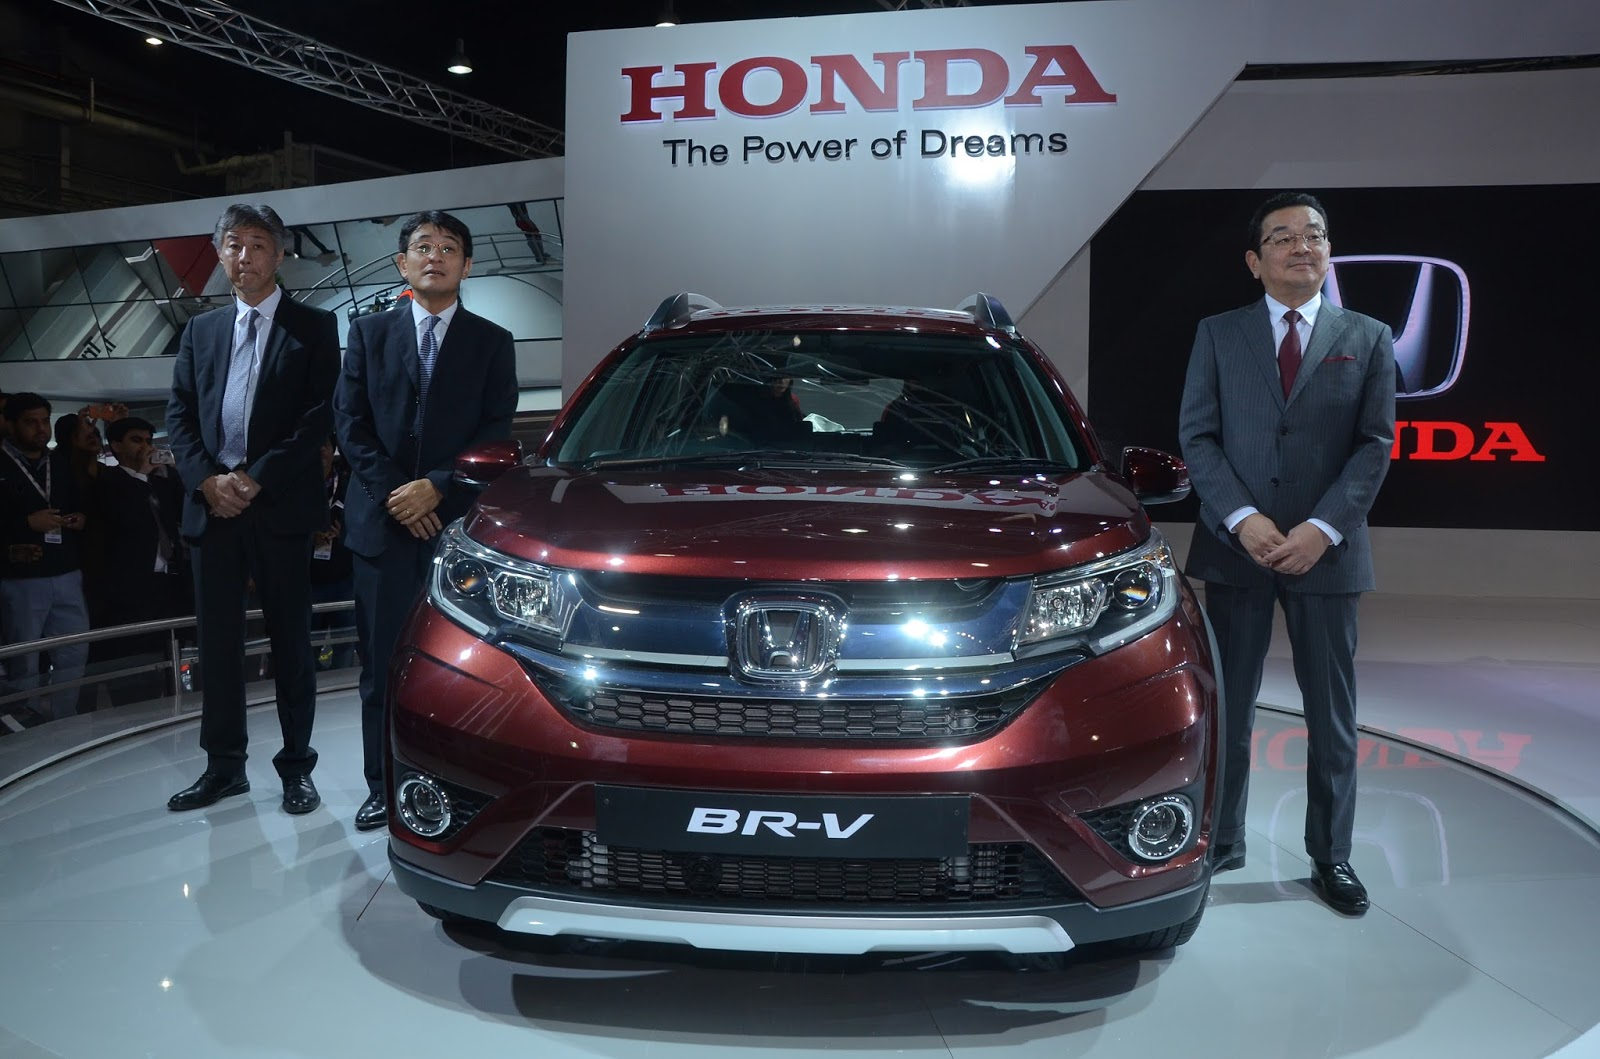 Honda BR-V at Auto Expo New Delhi 2016